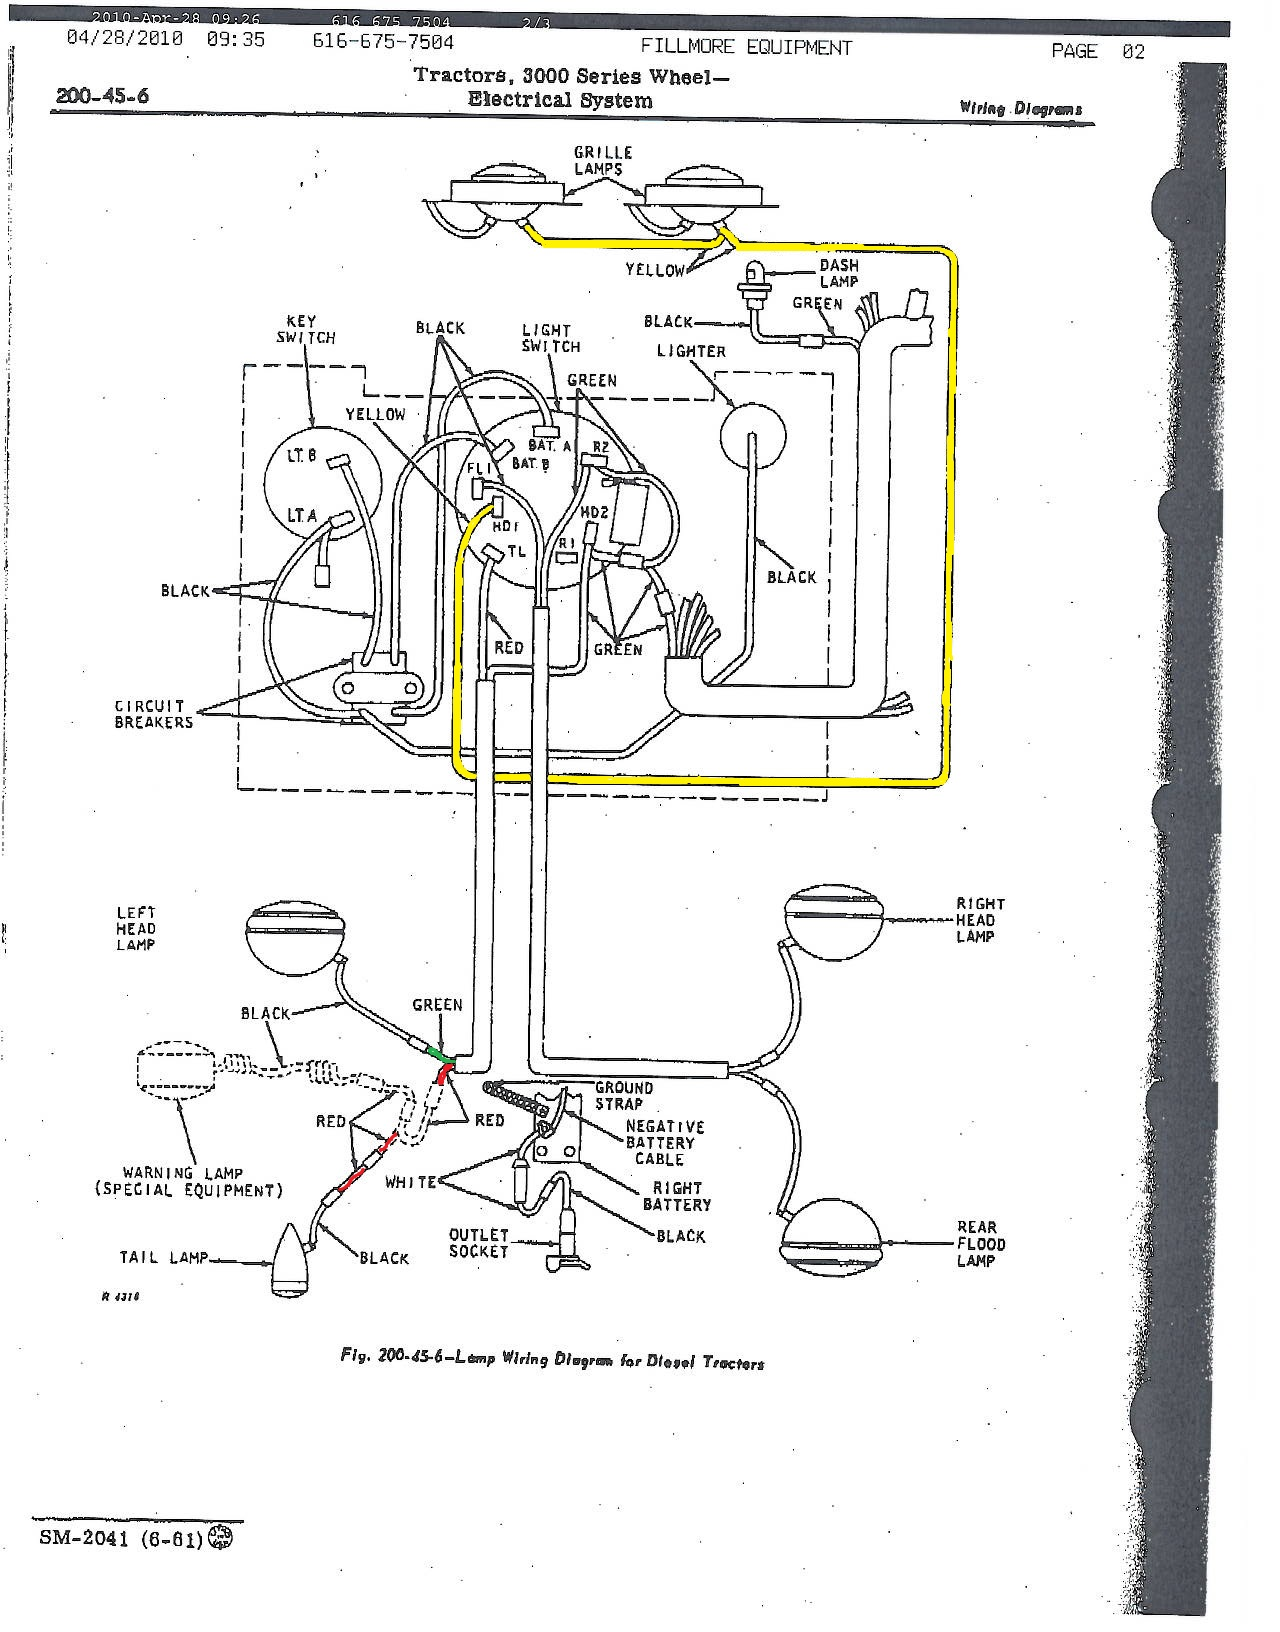 Jd 2020 Wiring Diagram 3010 Online Schematics Diagrams Rh Charliemckinley Com John Deere Light Gas